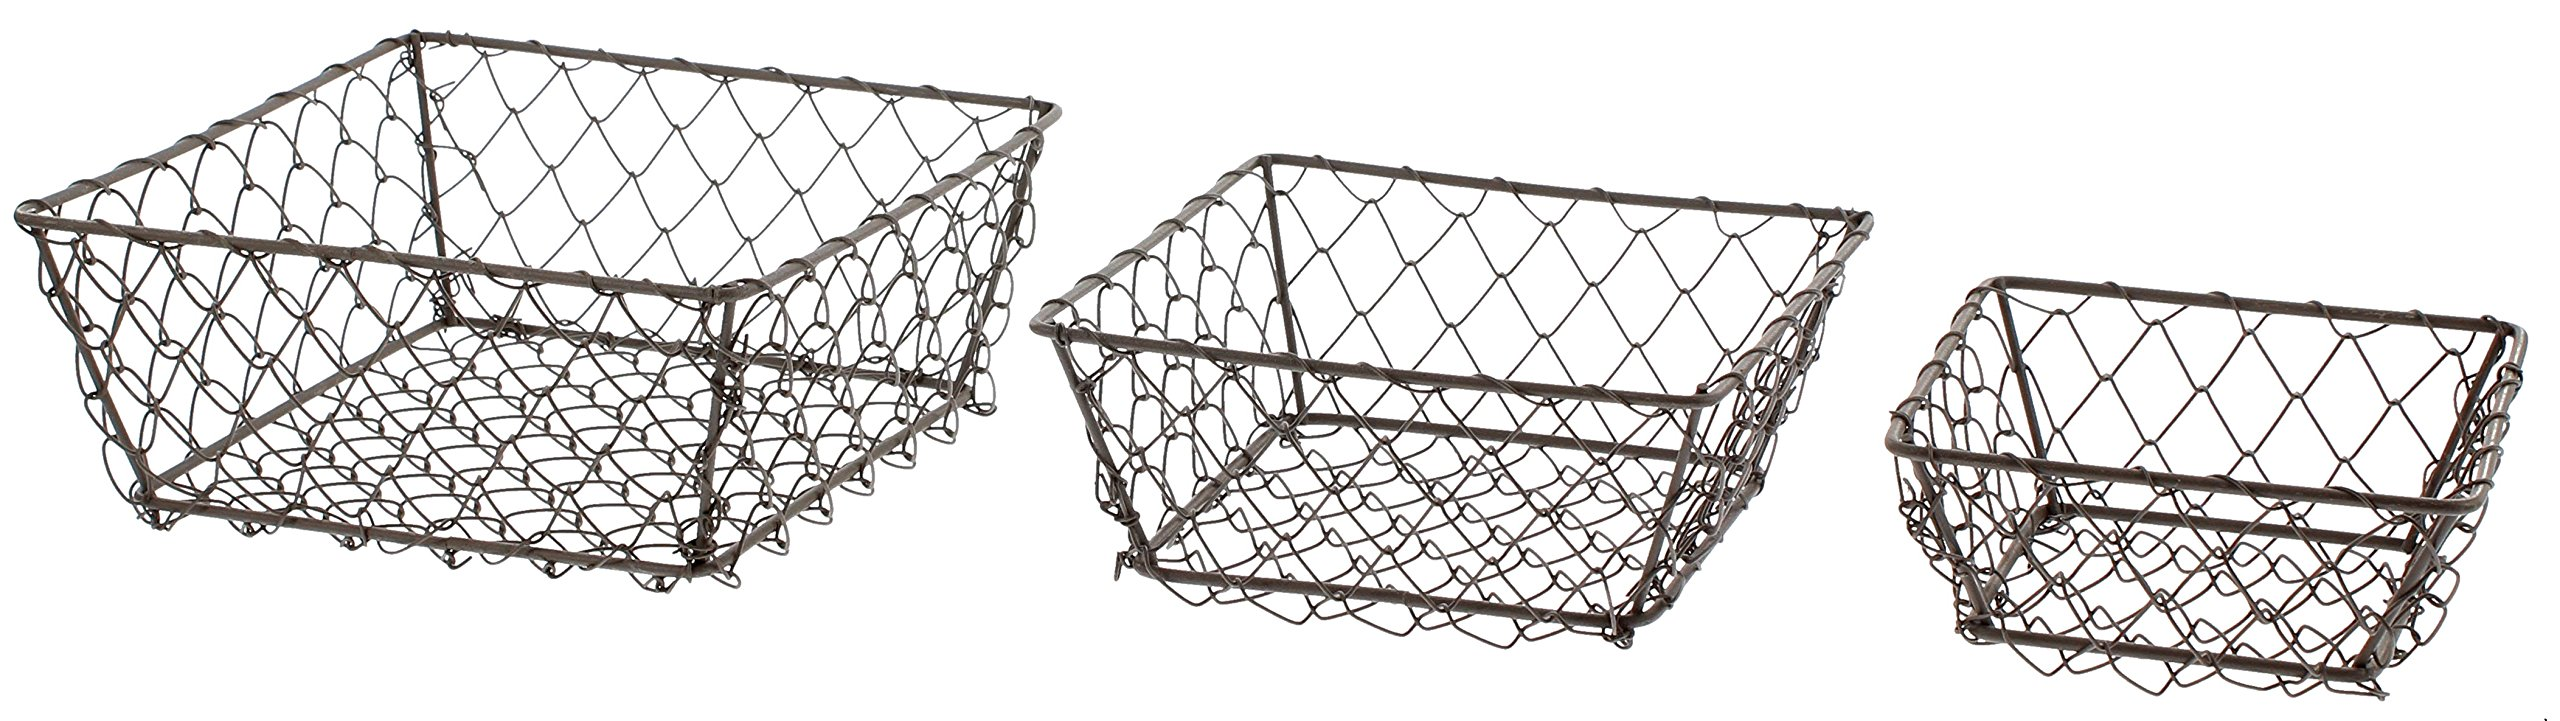 Park Hill Set Of 3 Square Wire Berry Baskets by Park Hill (Image #1)